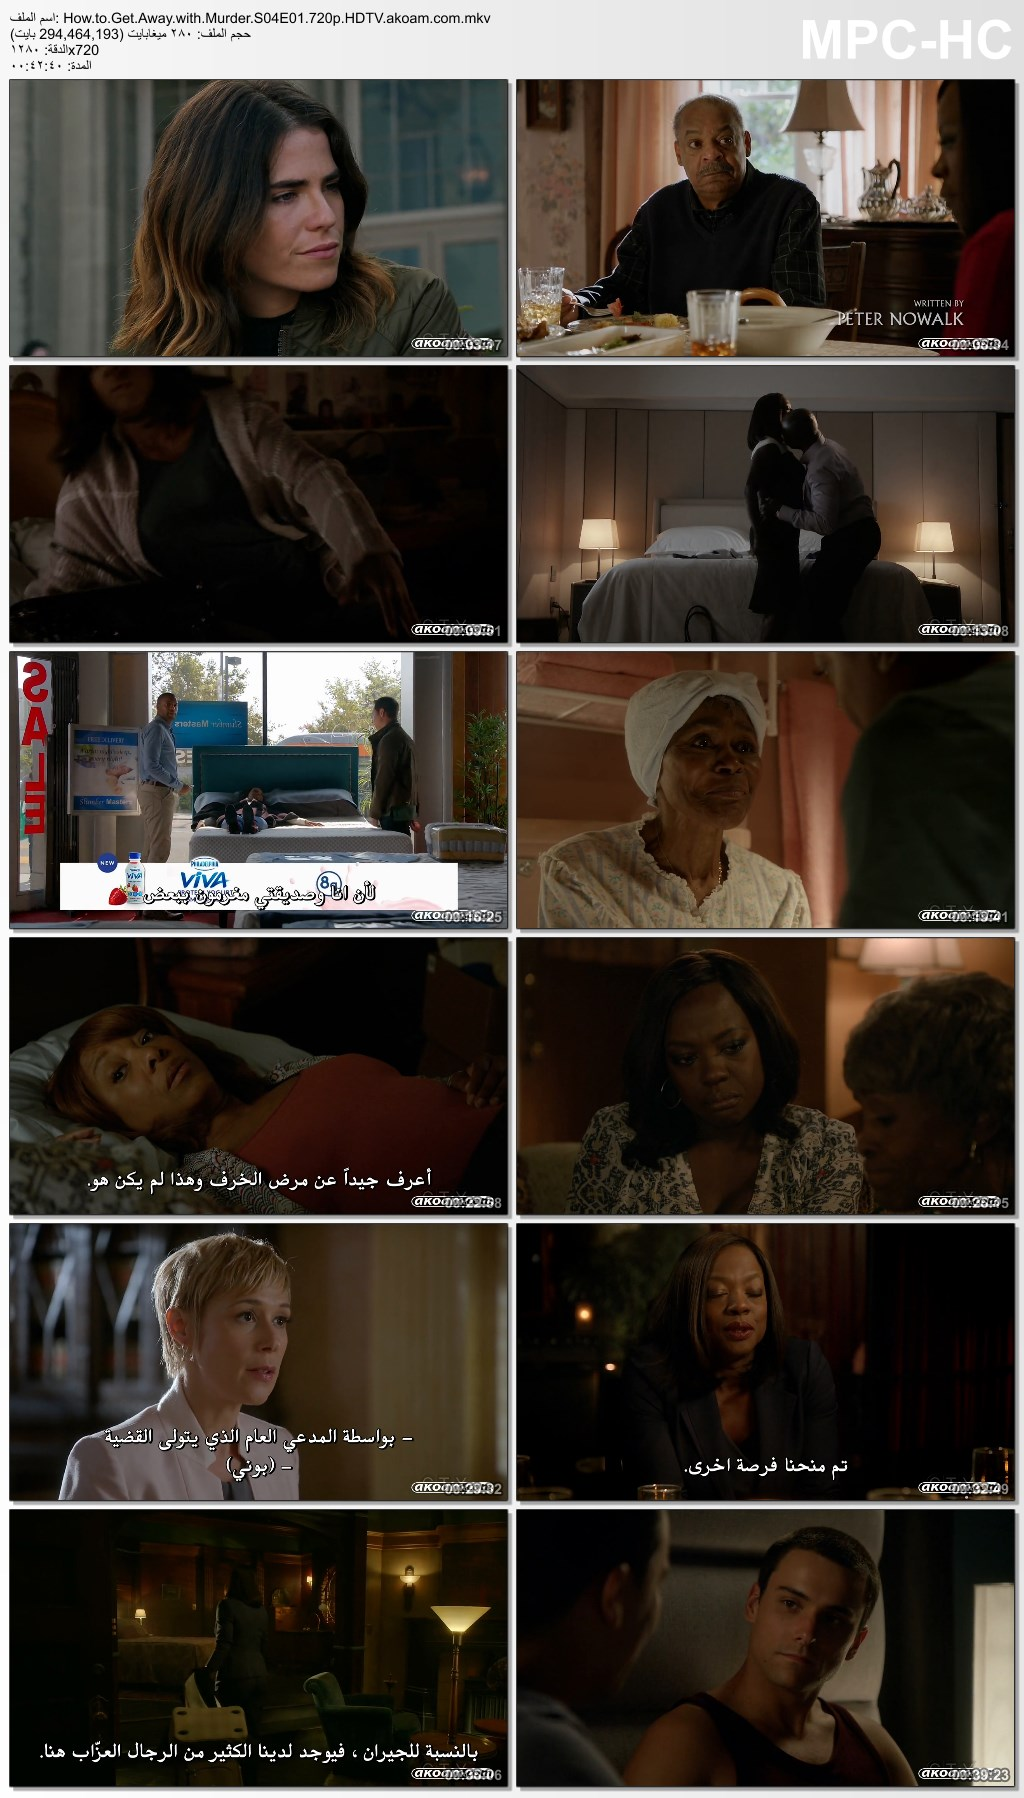 الغموض,الجريمة,How to Get Away with Murder,كيف تفلت بجريمتك